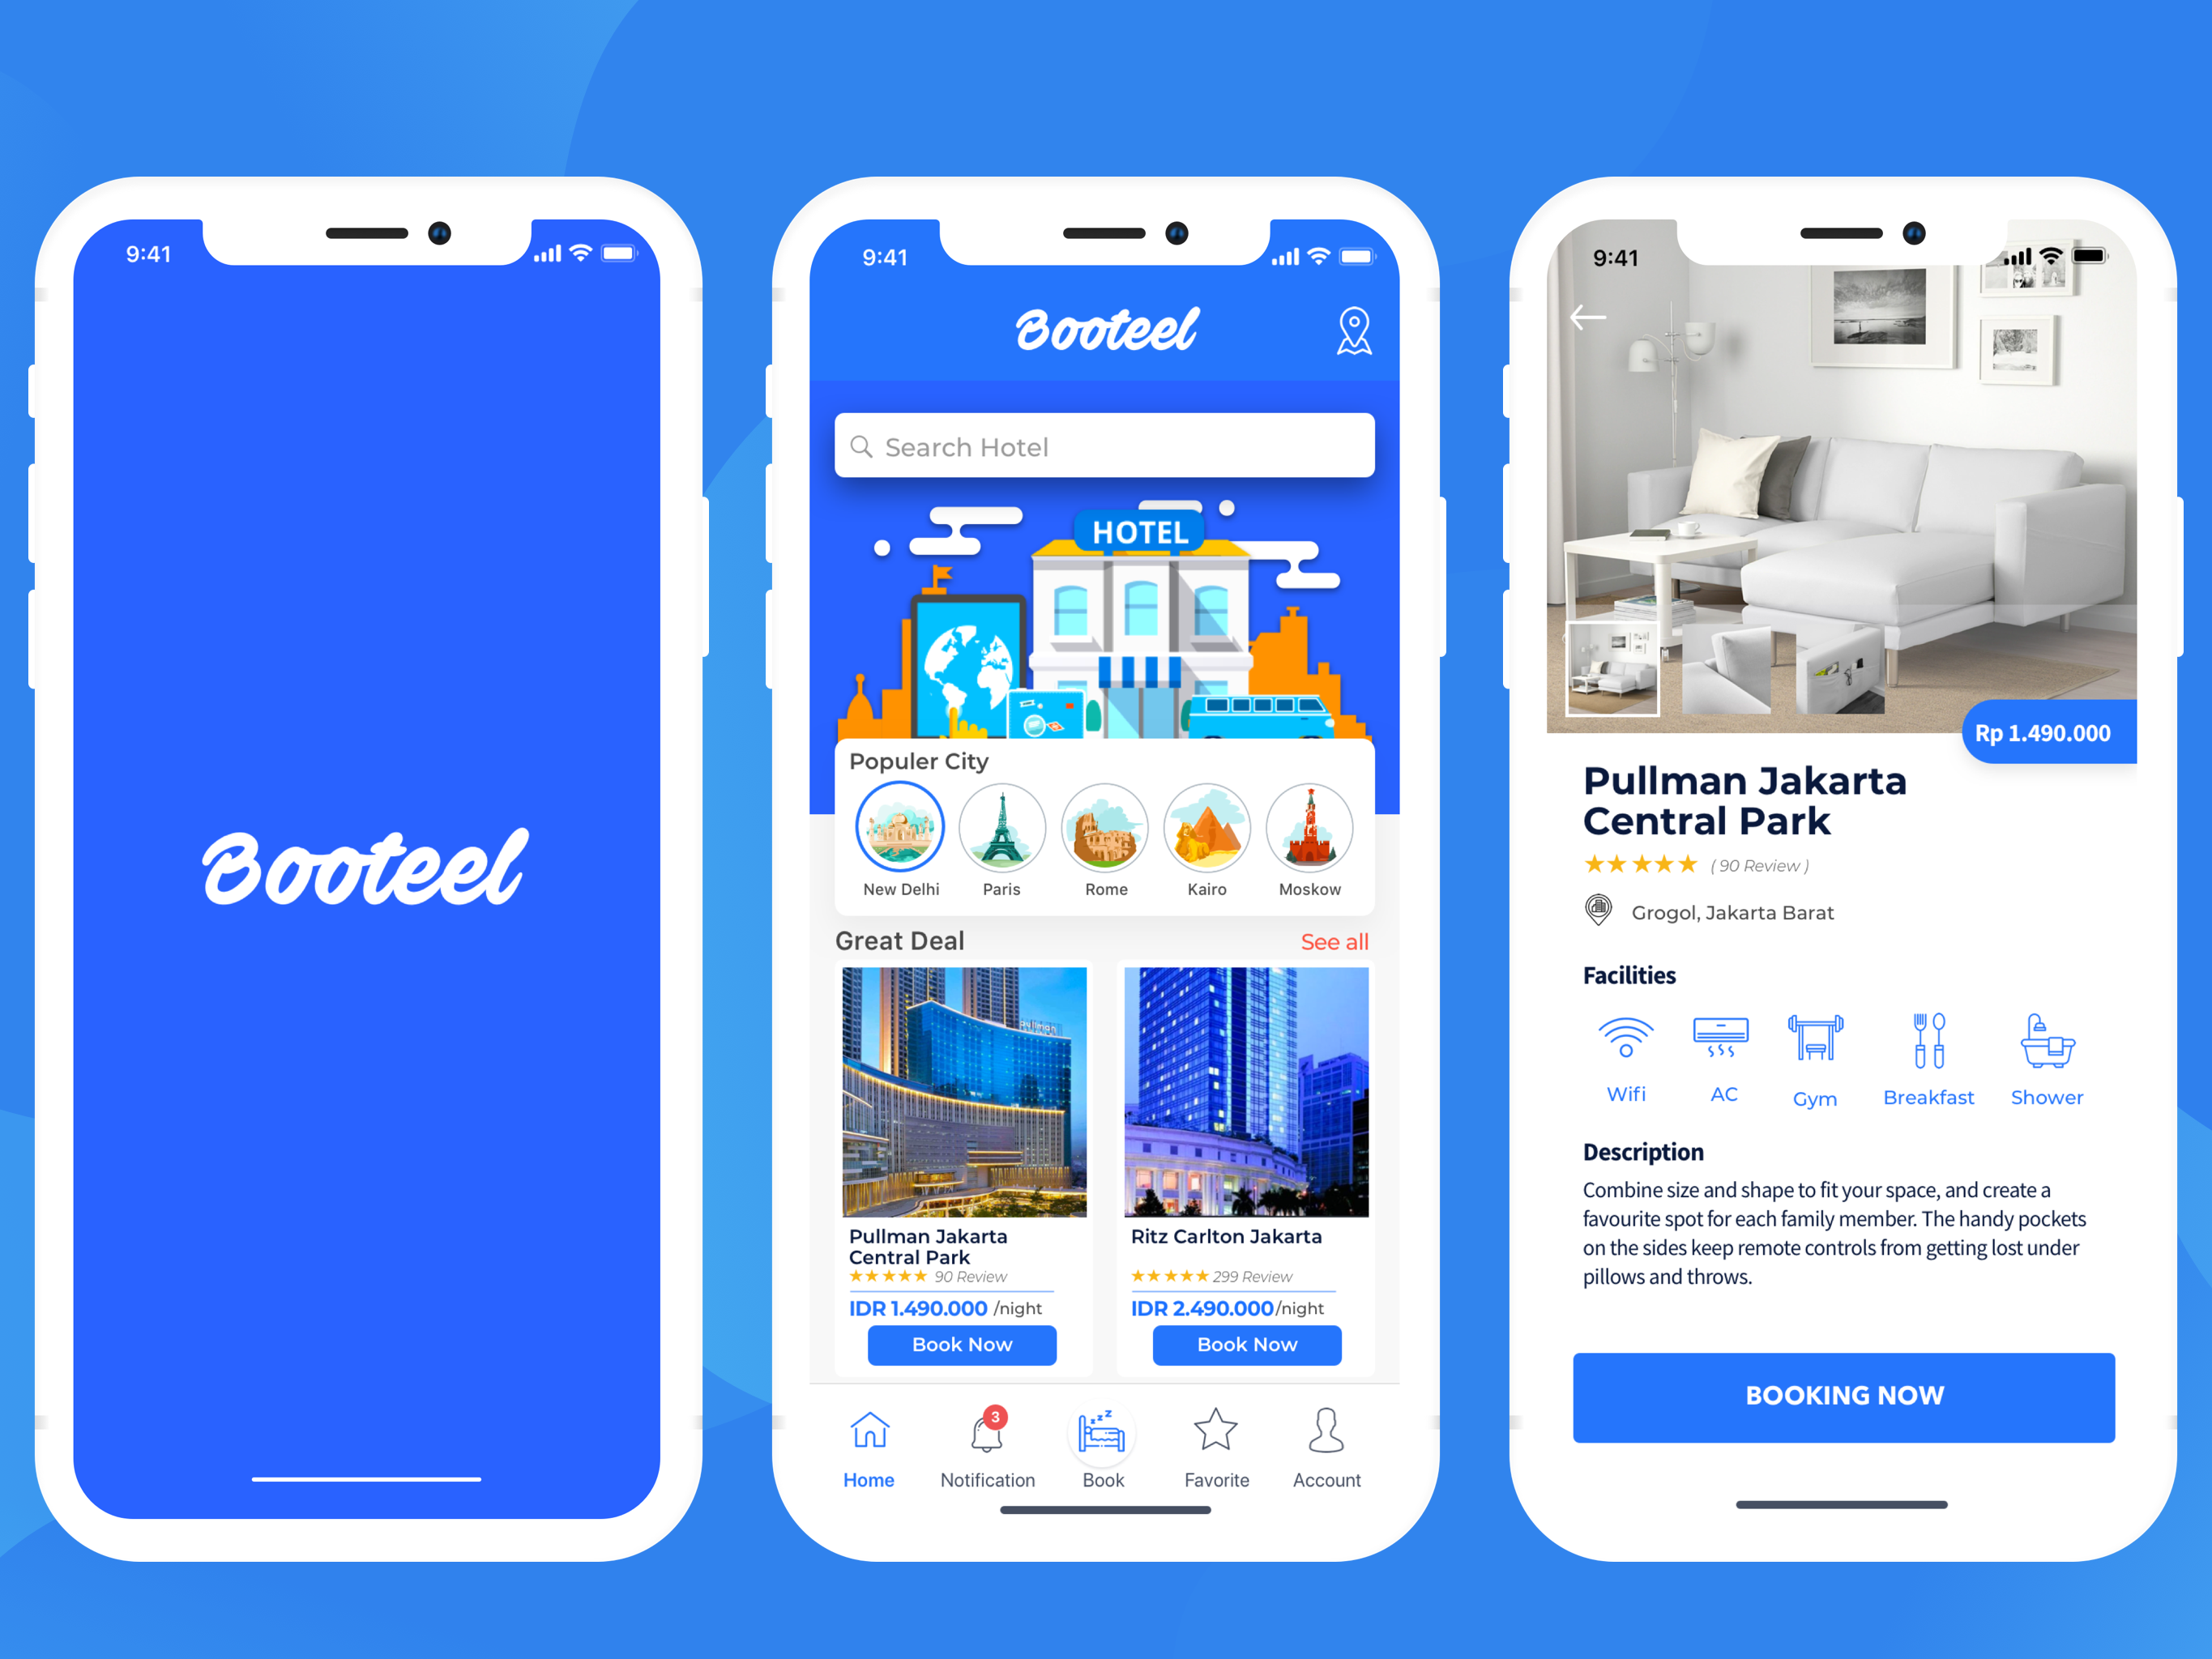 Hotel Booking Mobile App Design Paris Hotel Central Park